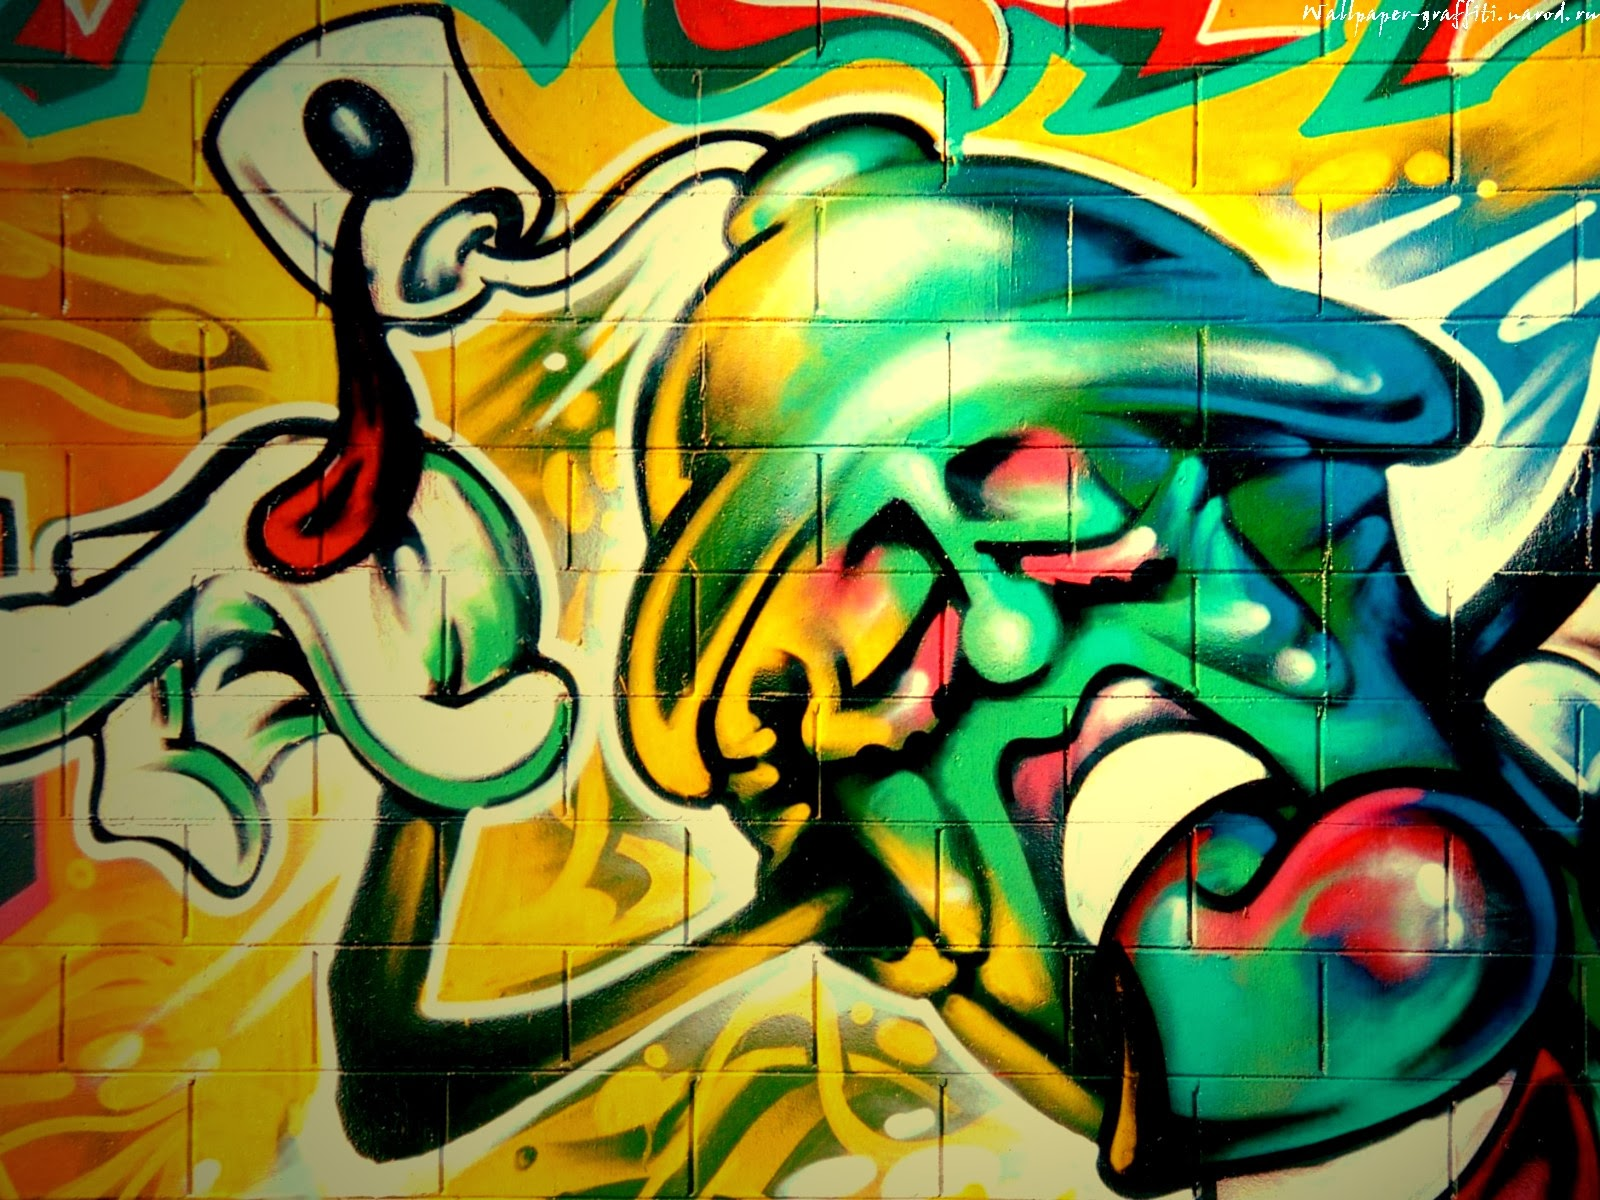 Graffiti wall graffiti wallpaper for Graffiti wallpaper